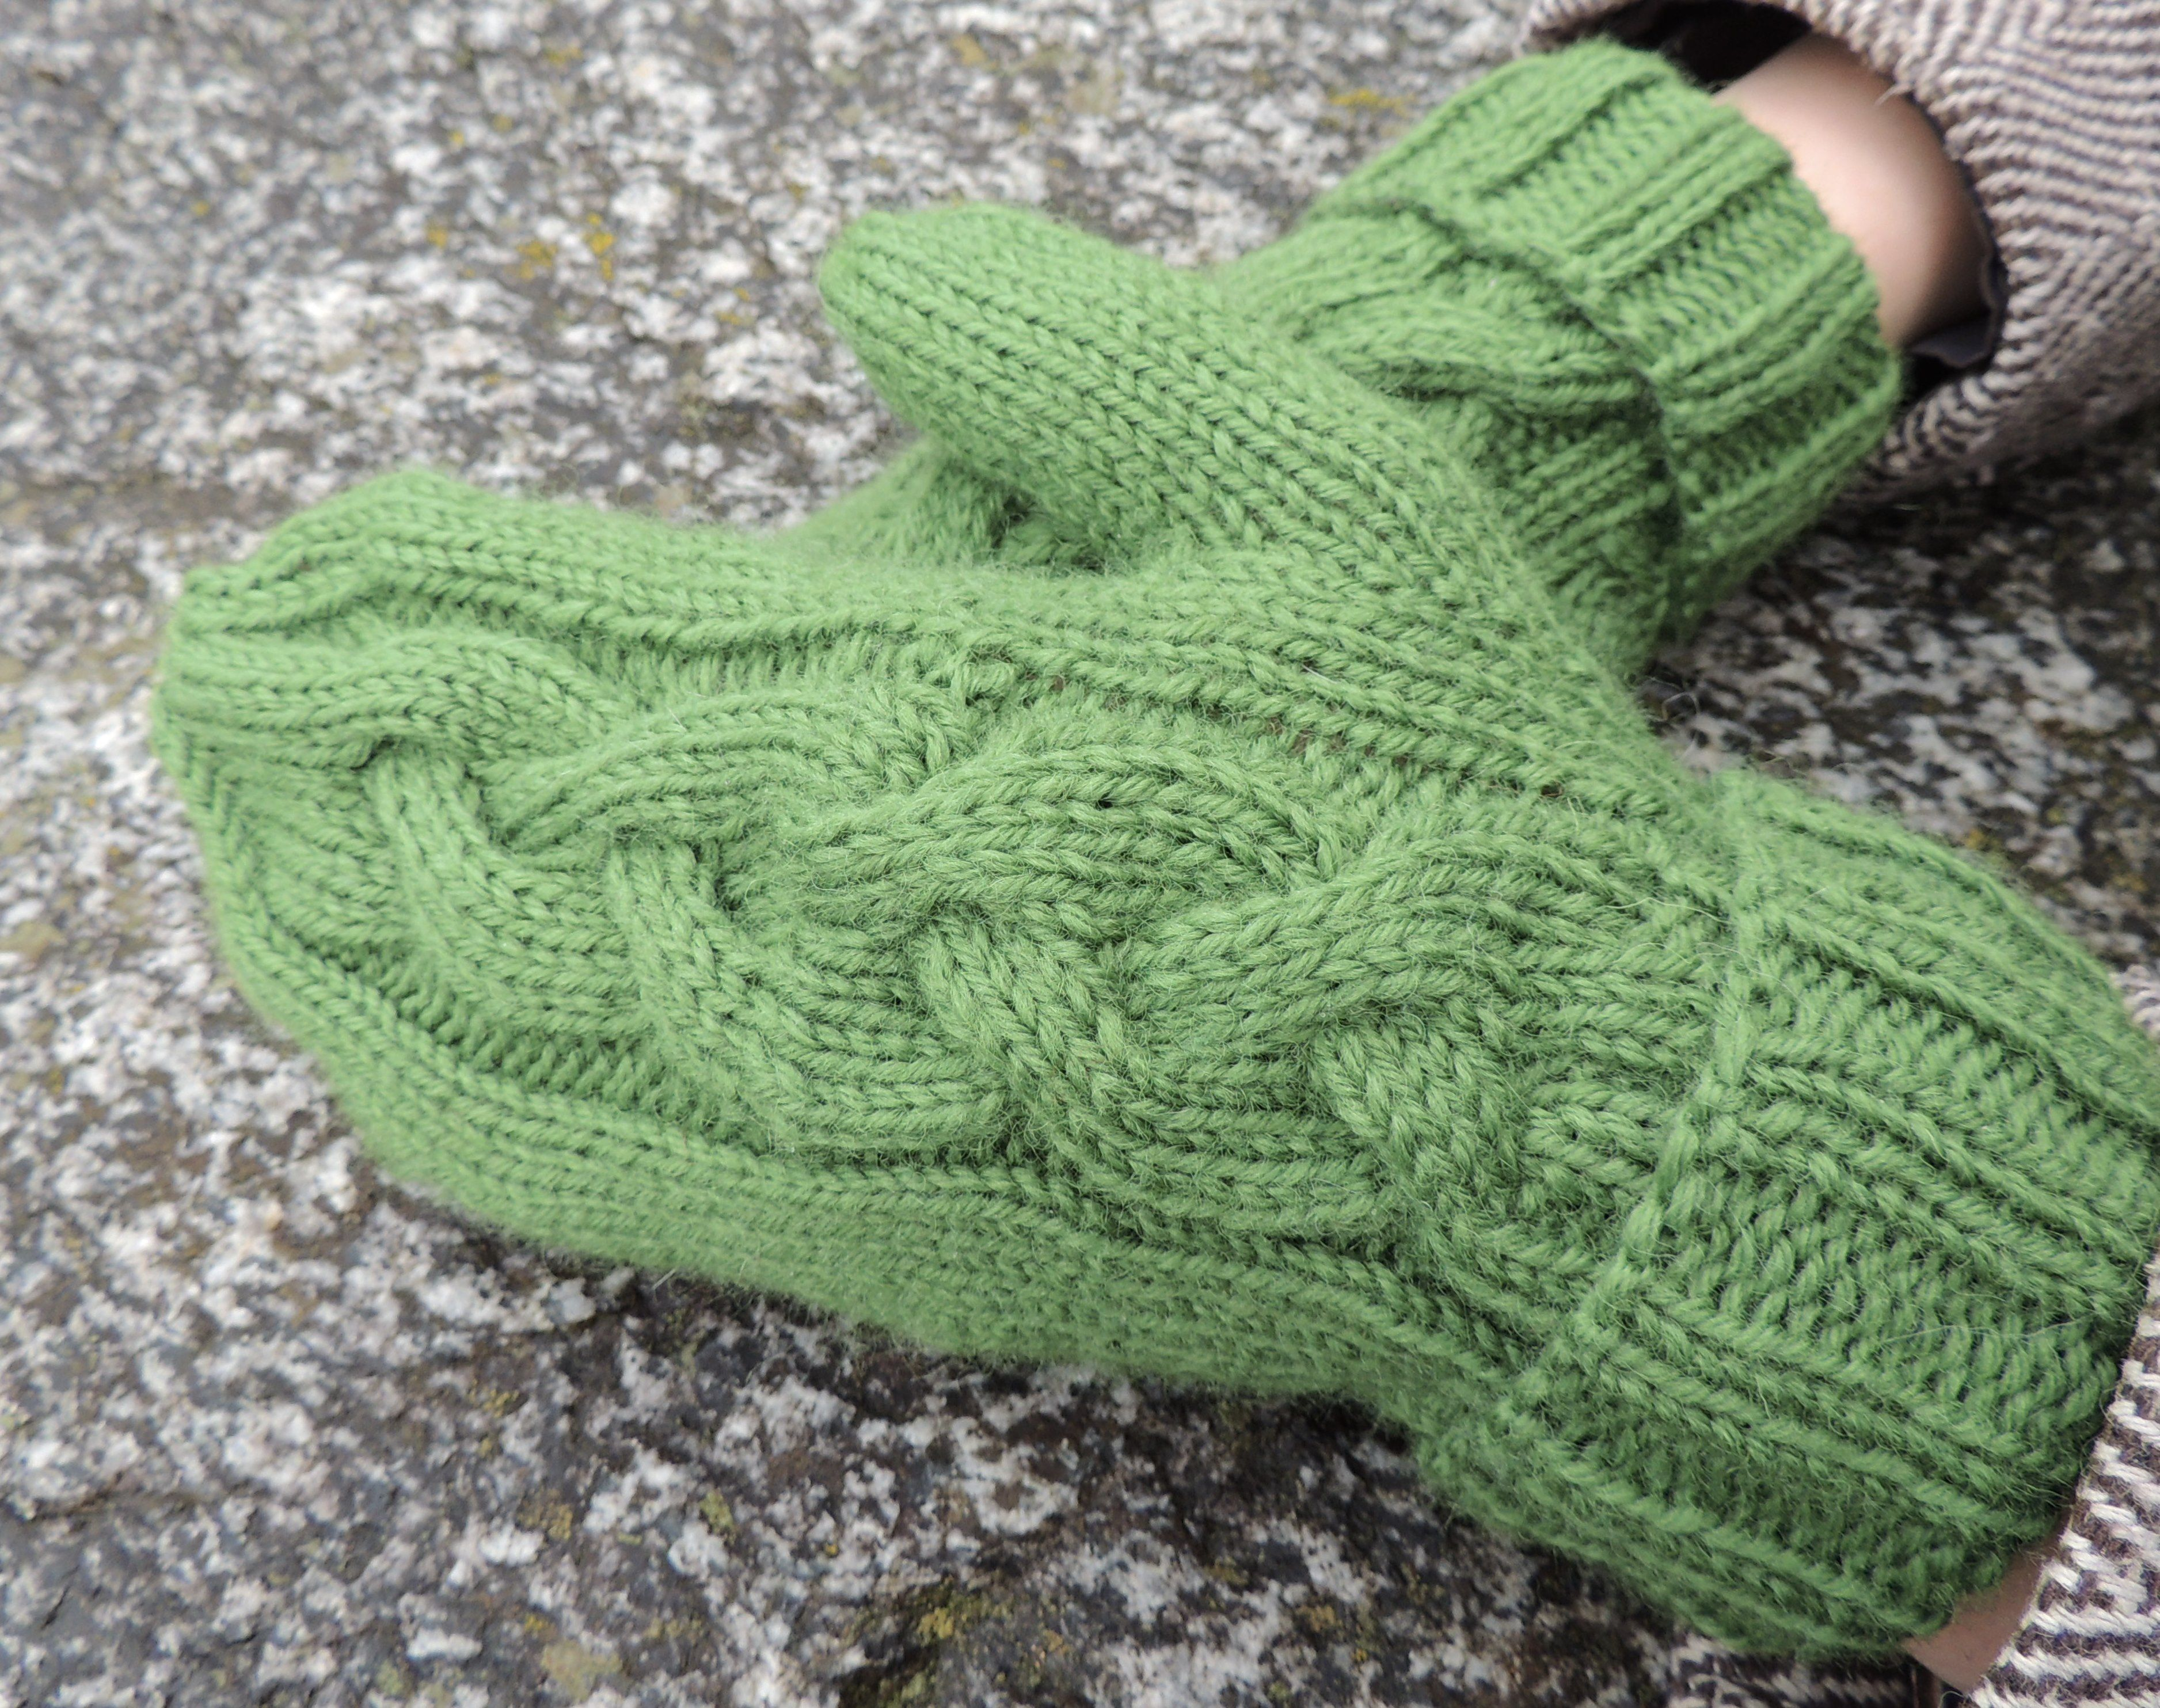 Carefully selected luxury yarn, knitting supplies, needles, patterns & books. Free shipping. Complete hand knitting resource.